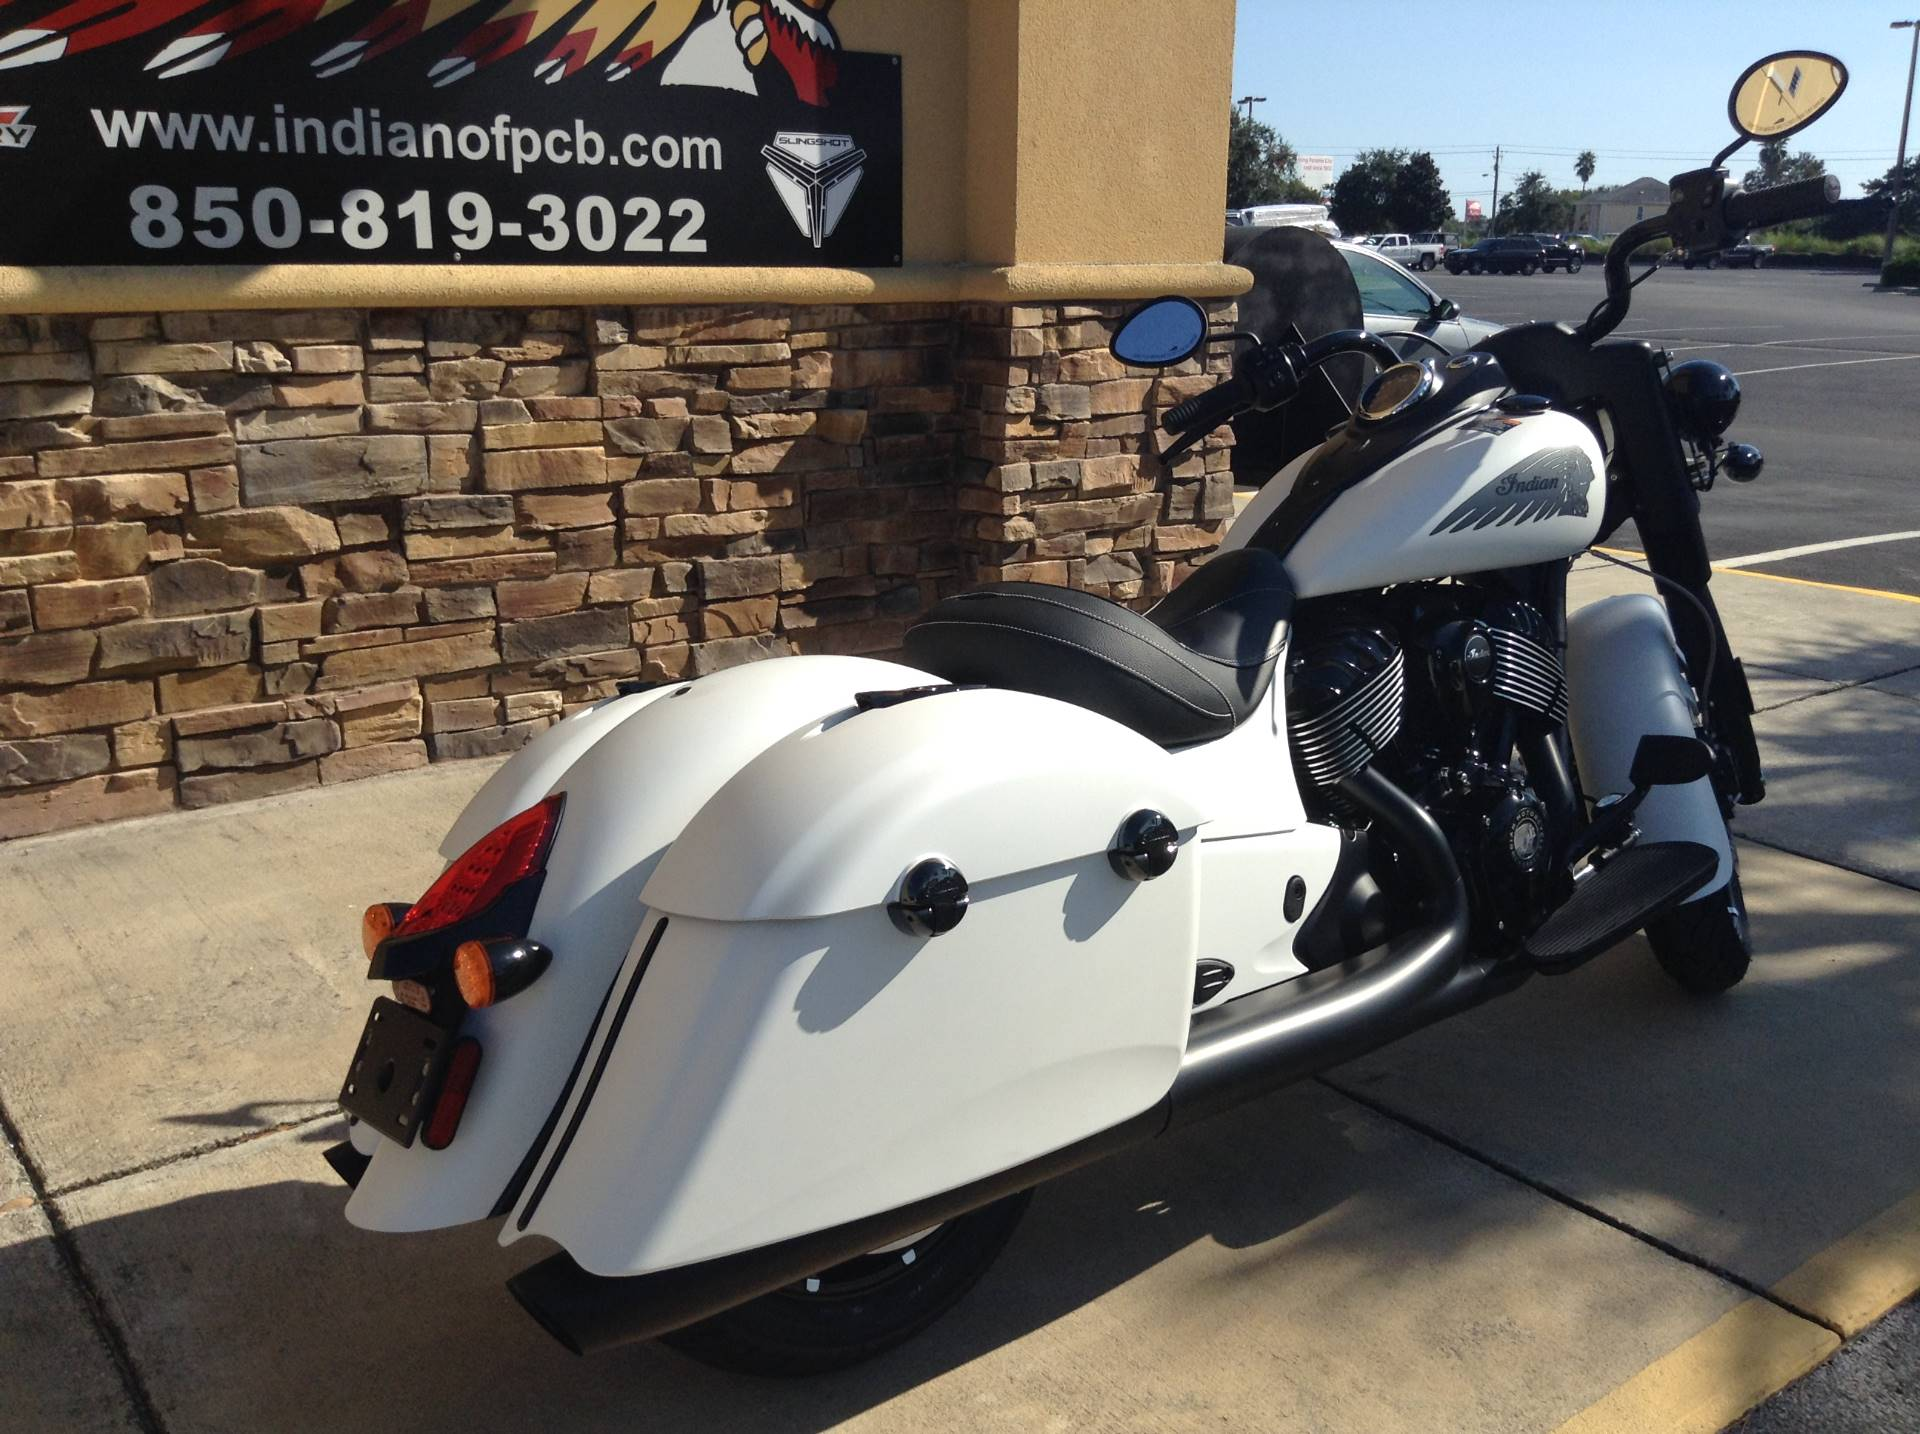 2019 Indian SPRINGFIELD DARKHORSE in Panama City Beach, Florida